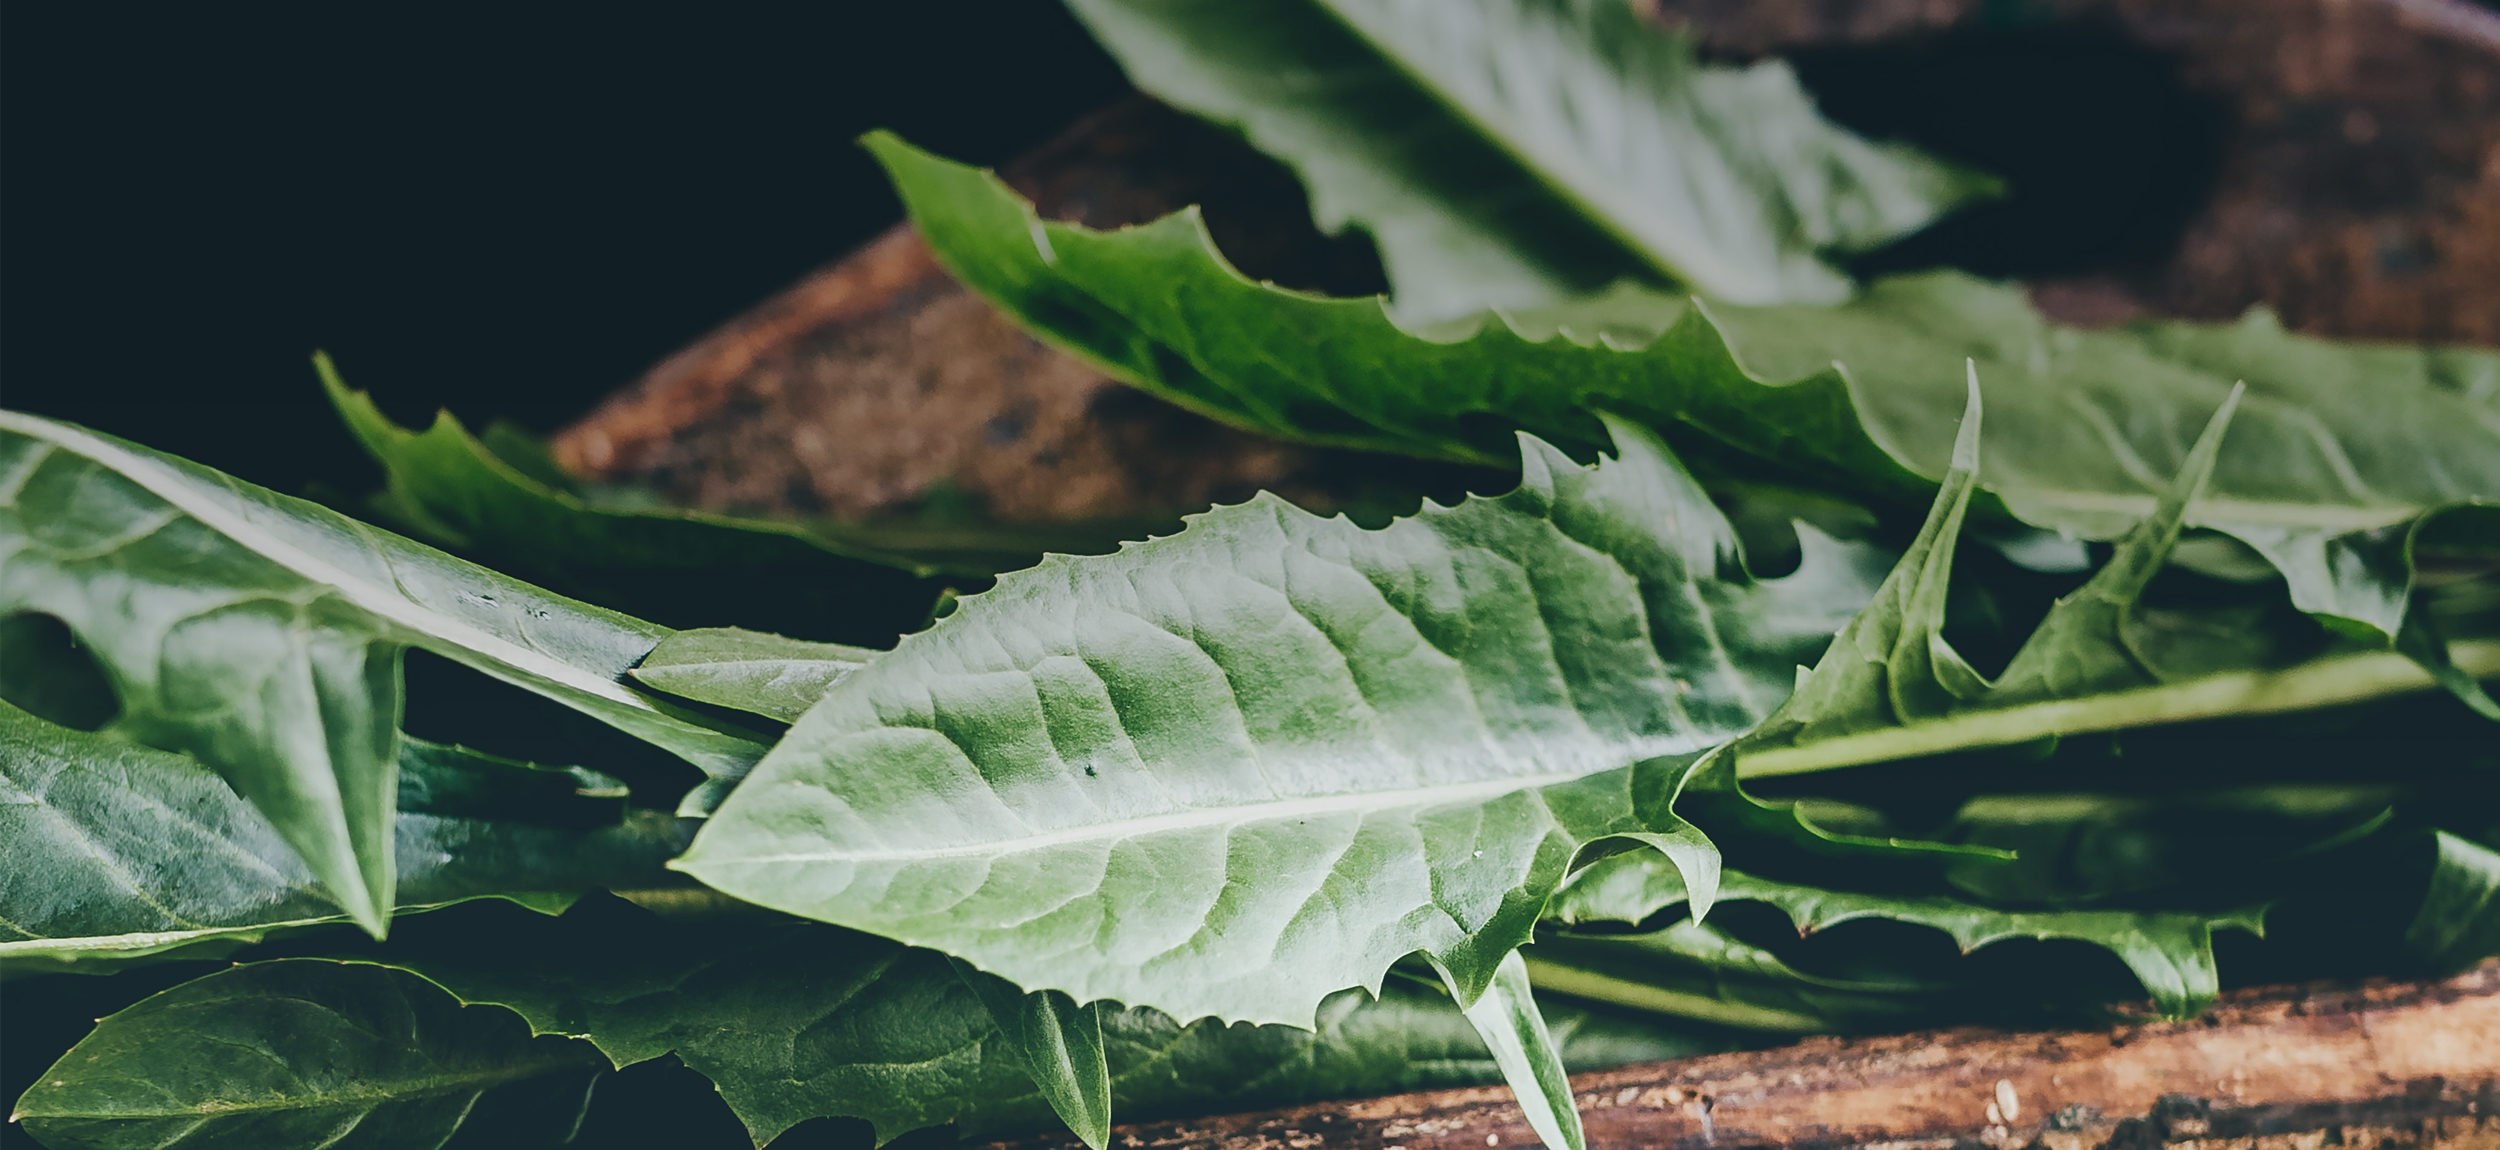 Hydroponics Produce at WhyNot Farms